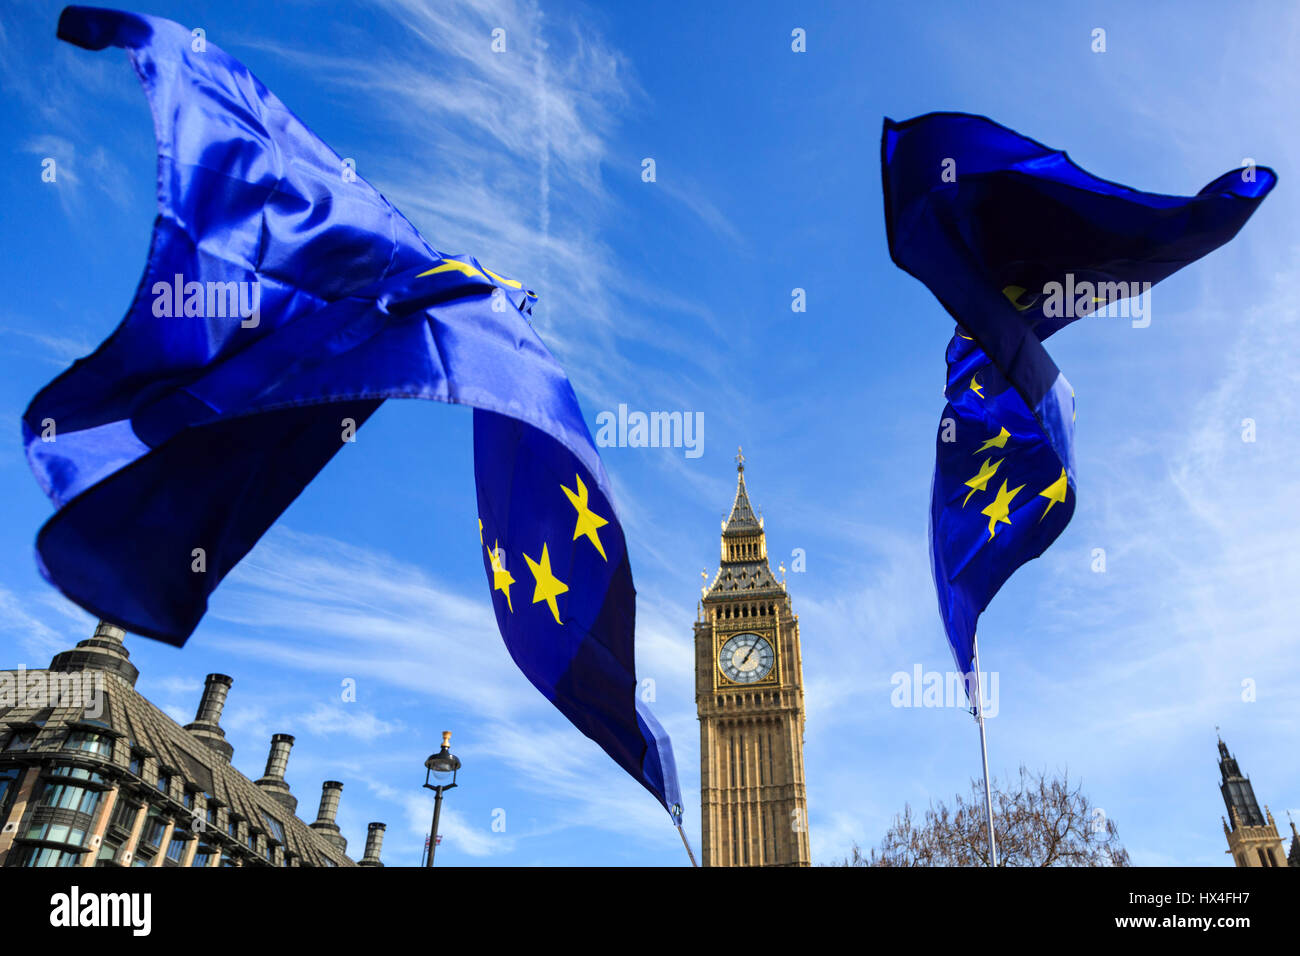 London, UK. 25 March 2017. After the Unite for Europe March, European Union flags fly in front of Big Ben. © - Stock Image